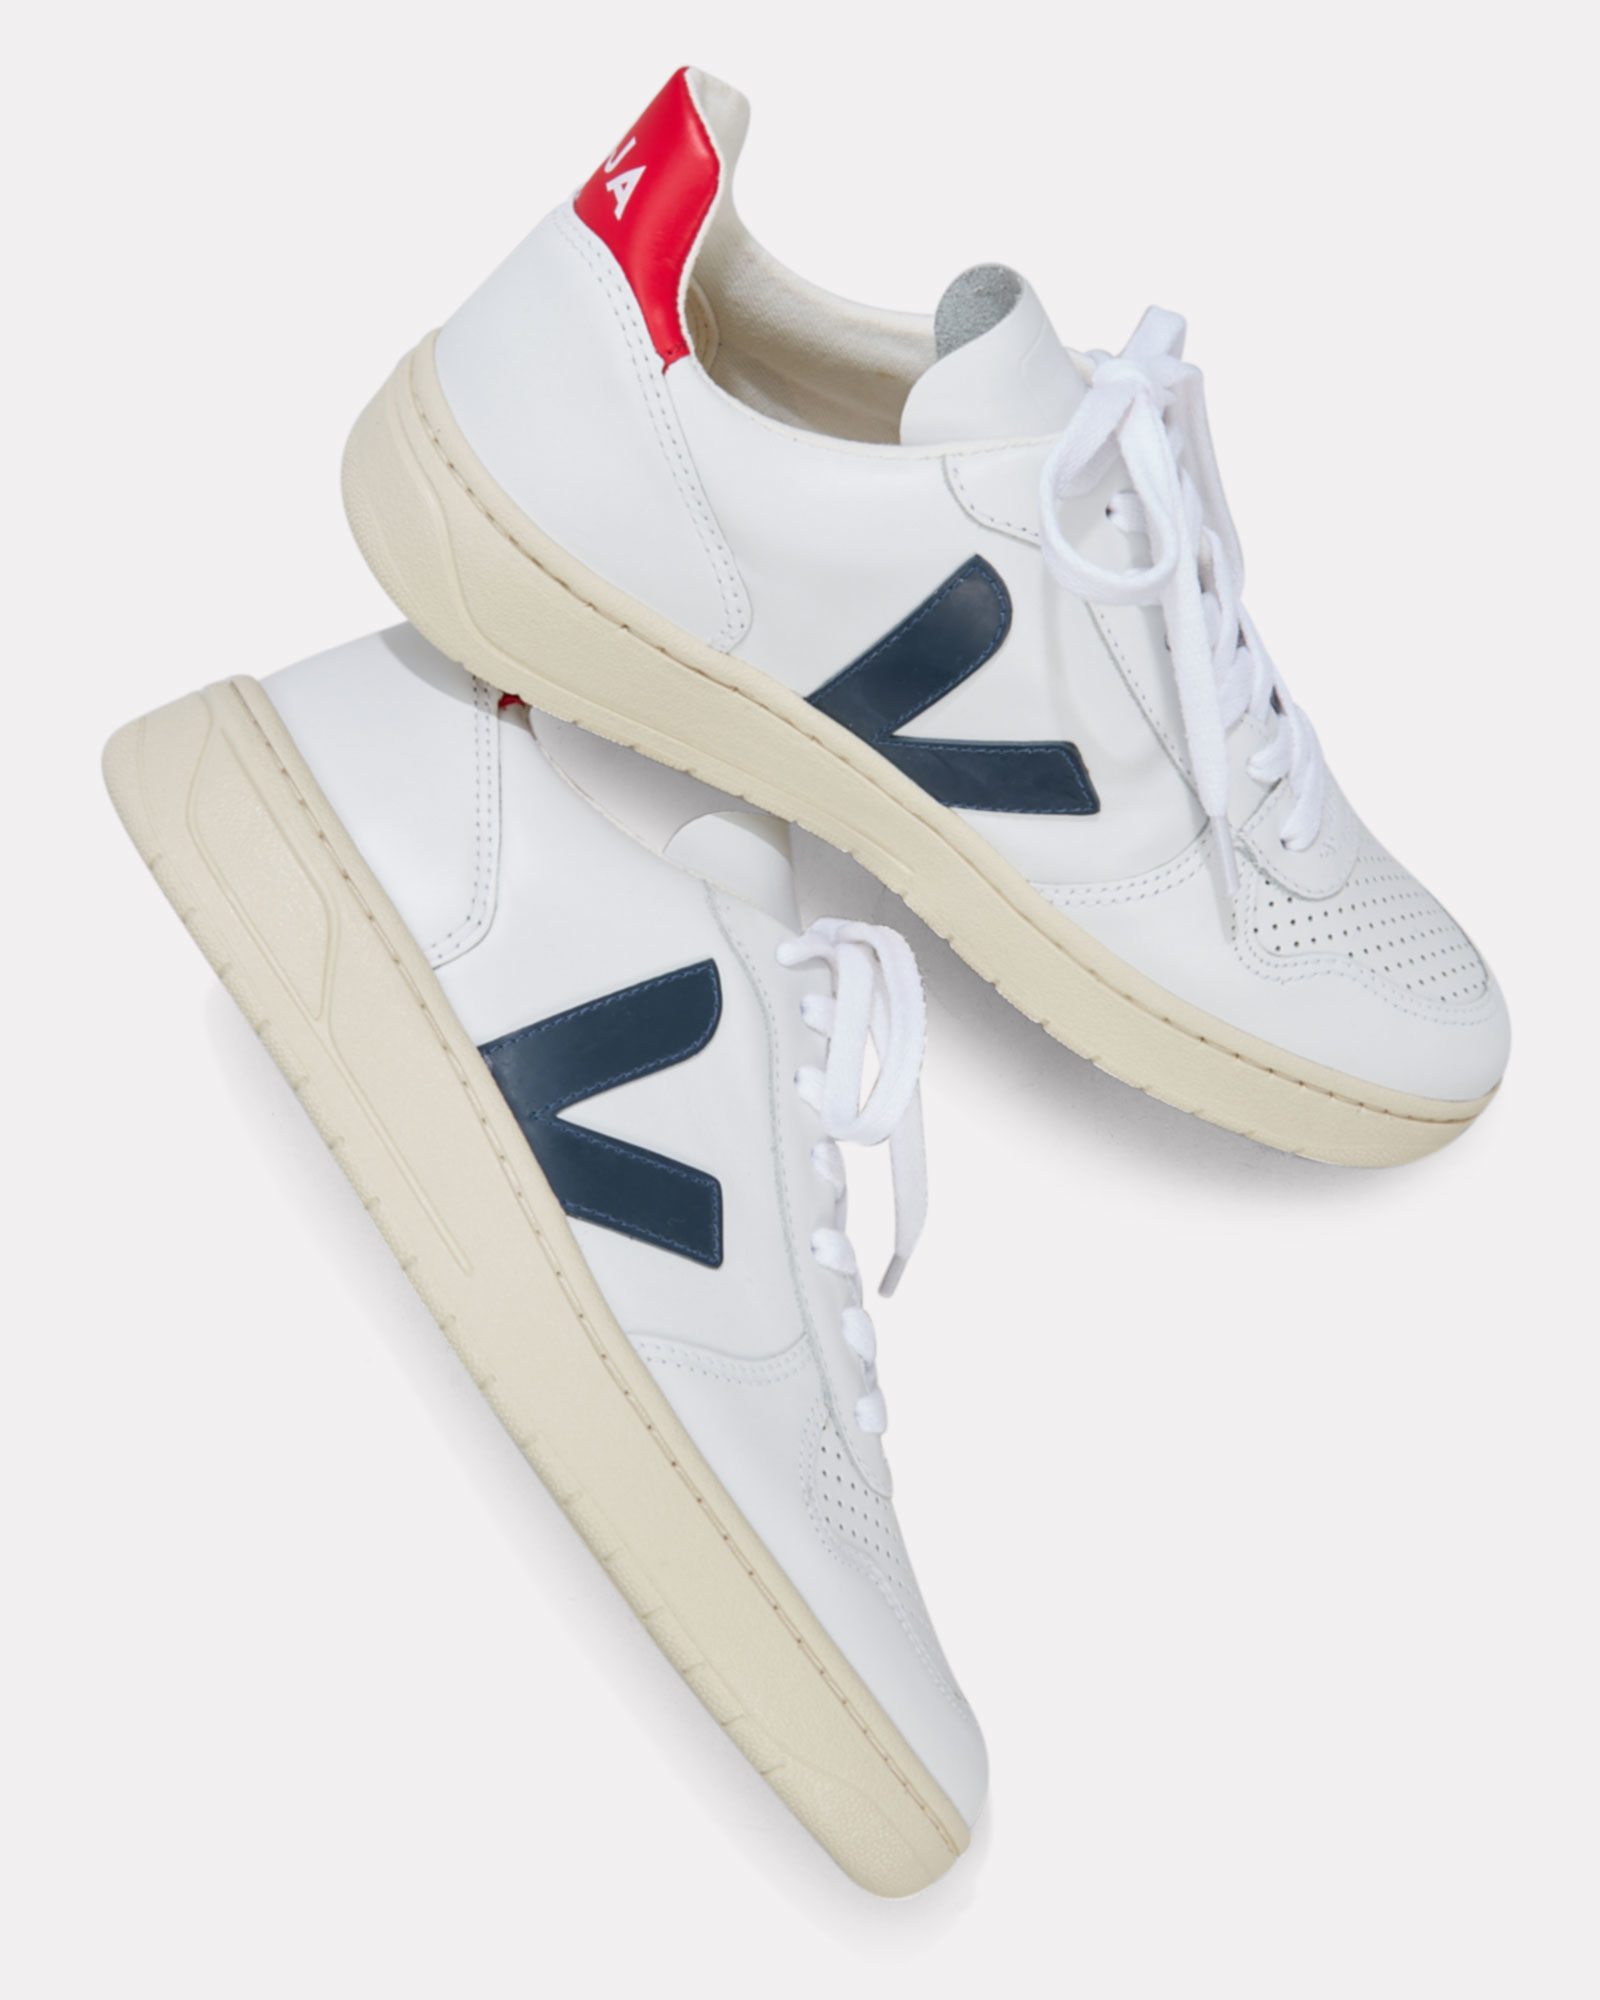 5. Fancy footwork - The upgraded sneaker is the shoe trend you need this season.